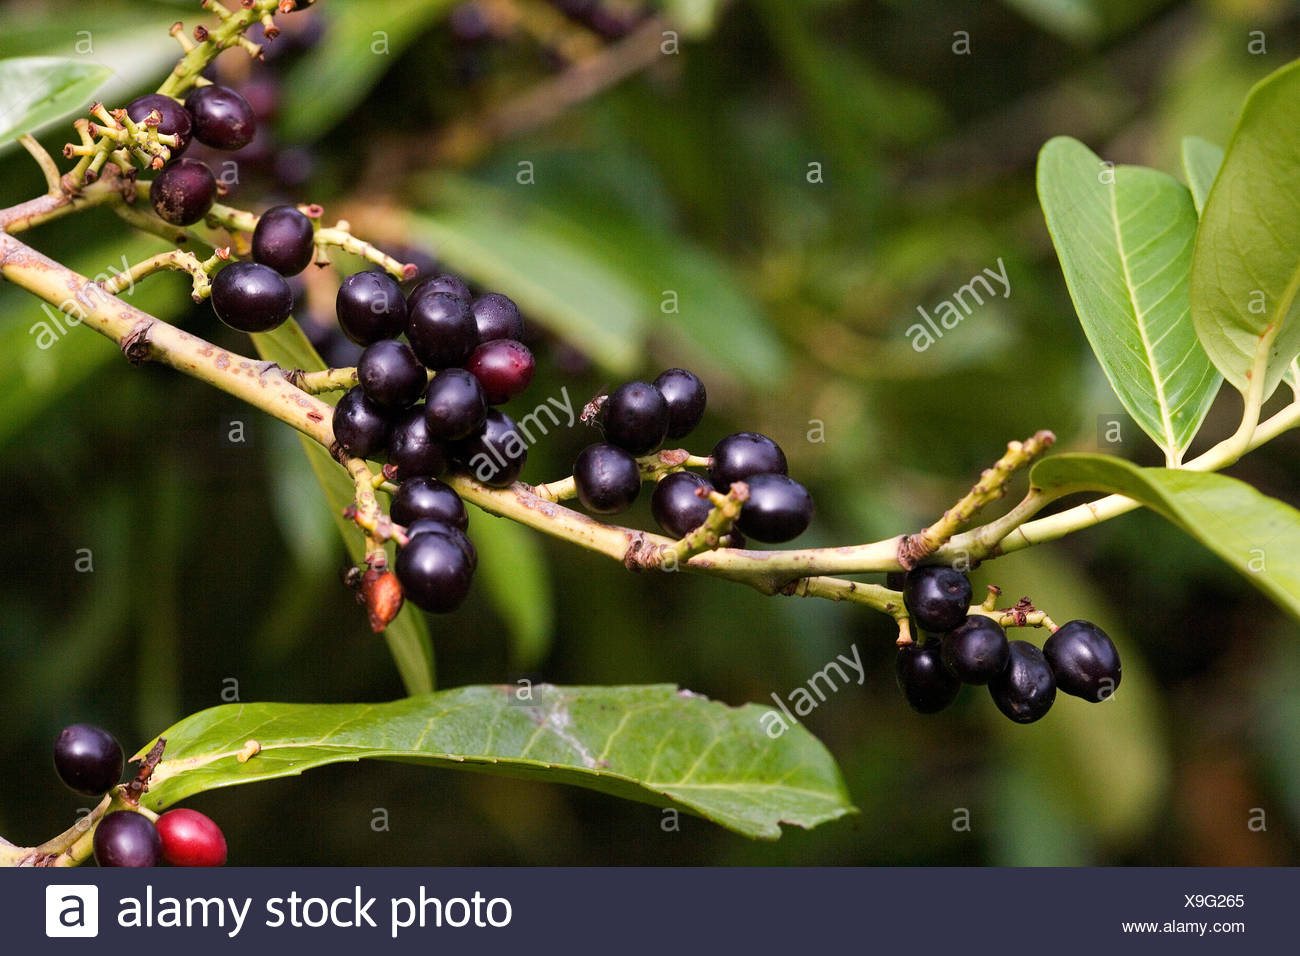 Cherry Laurel or Laurel Cherry, prunus laurocerasus, Tree in Normandy - Stock Image